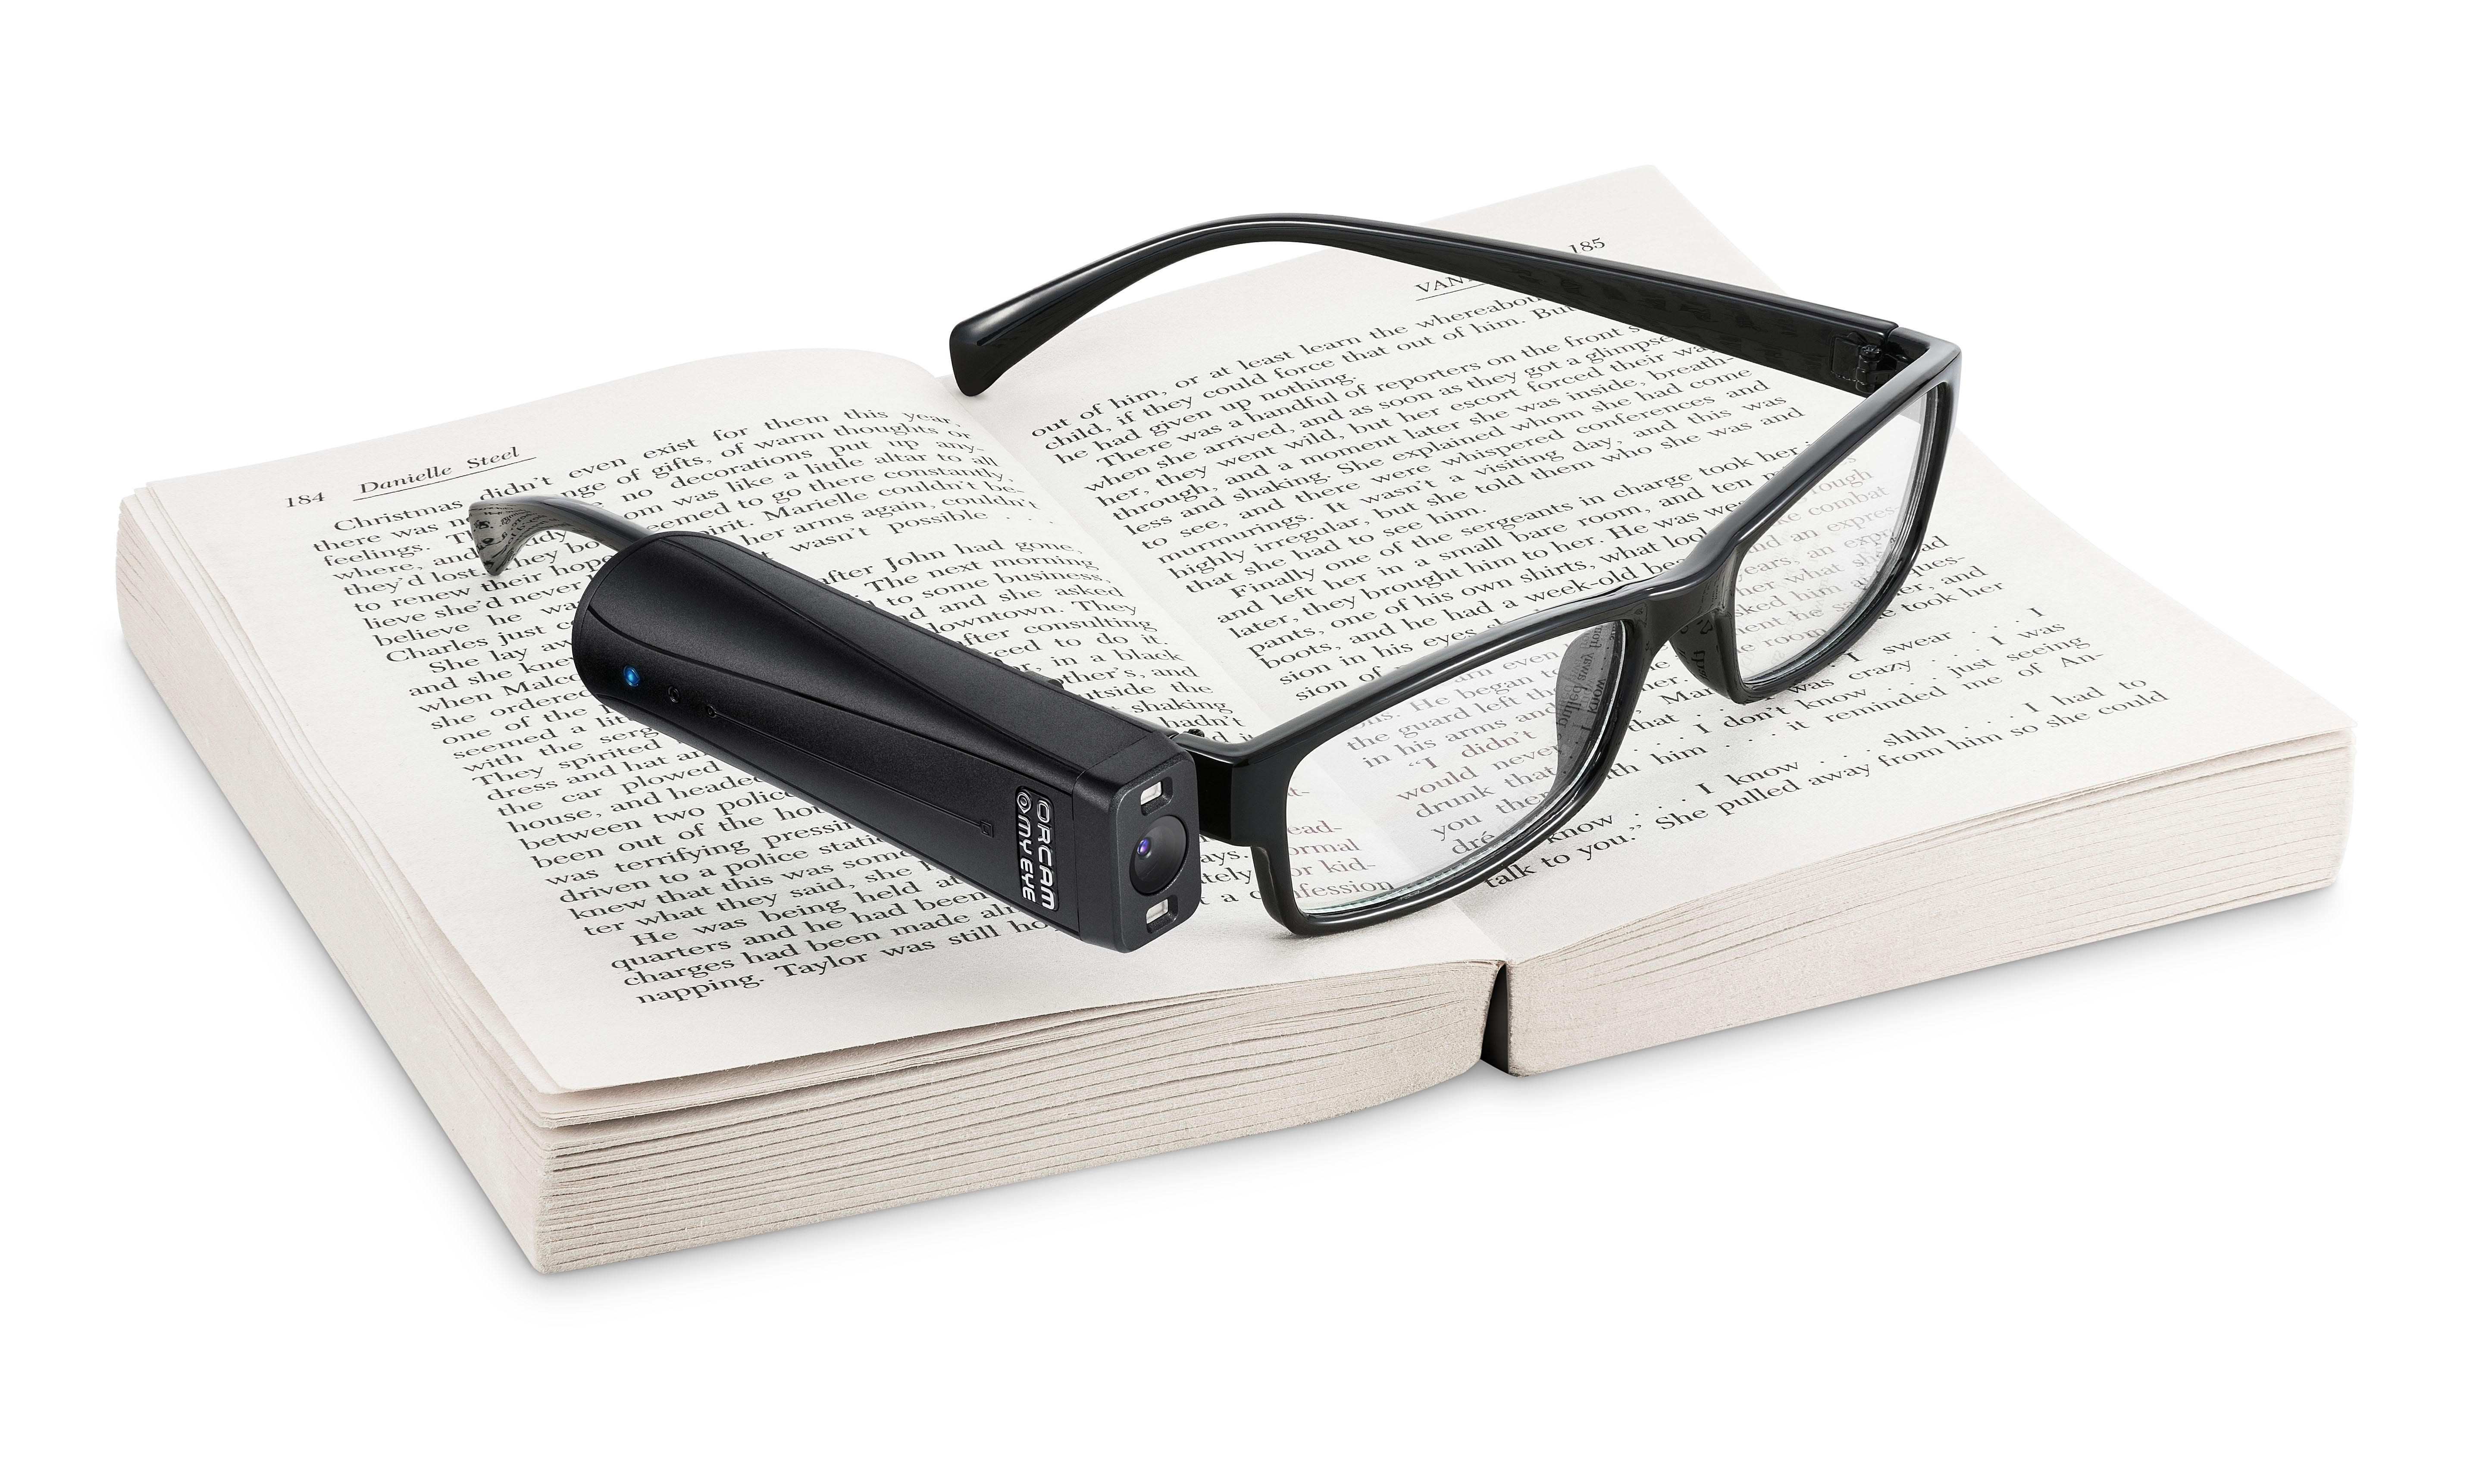 OrCam MyReader 2 on a pair of glasses resting on a book.